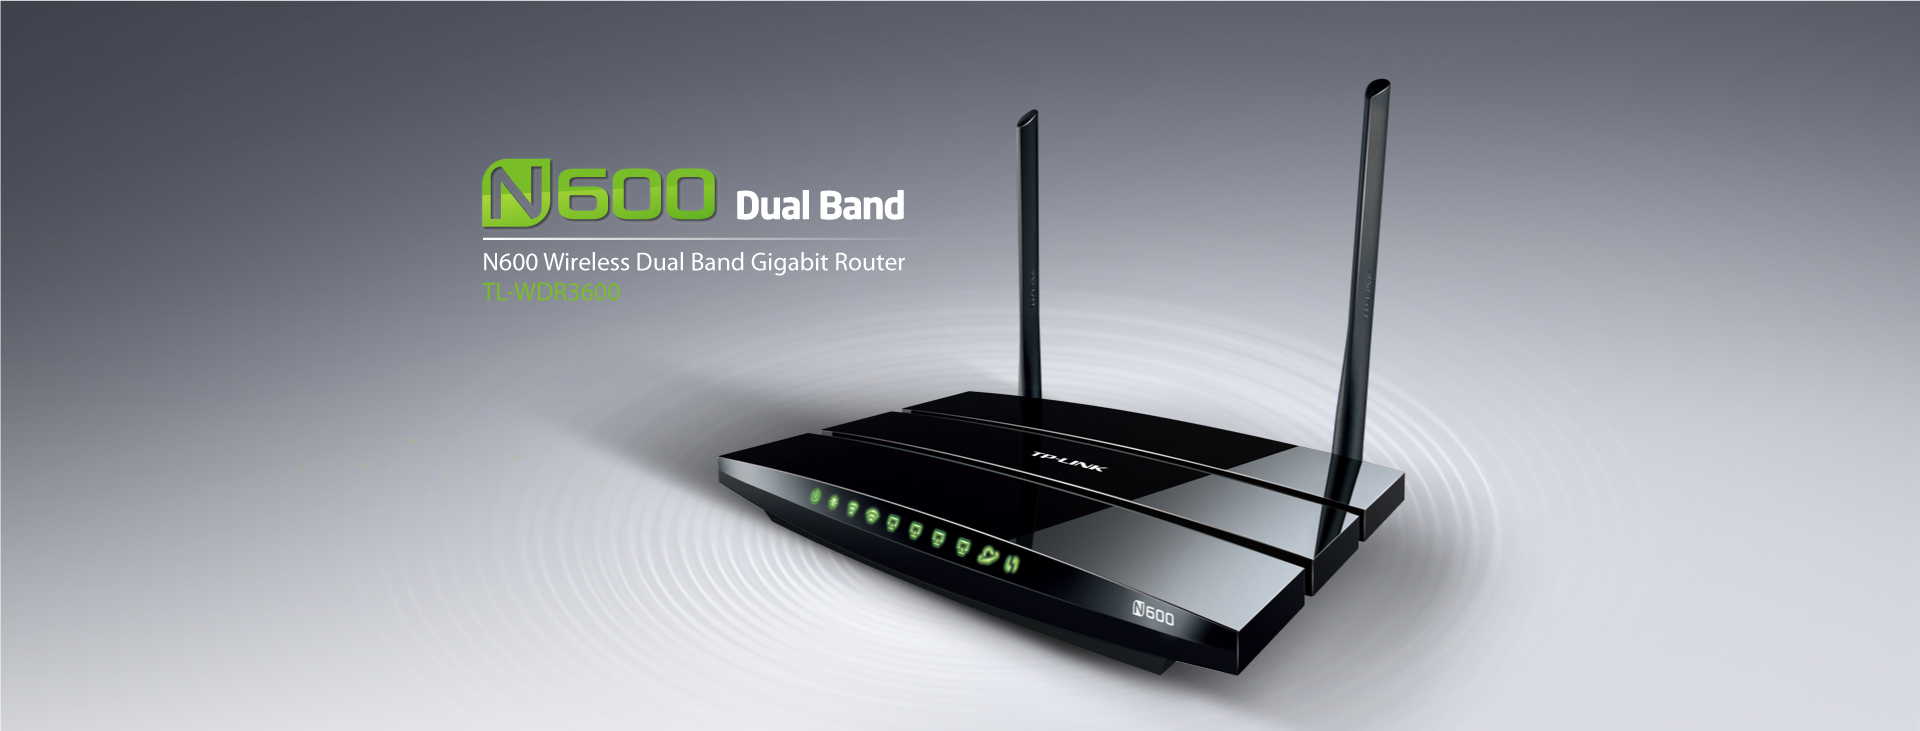 tp link tl wdr3600 wireless n600 dual band router test server